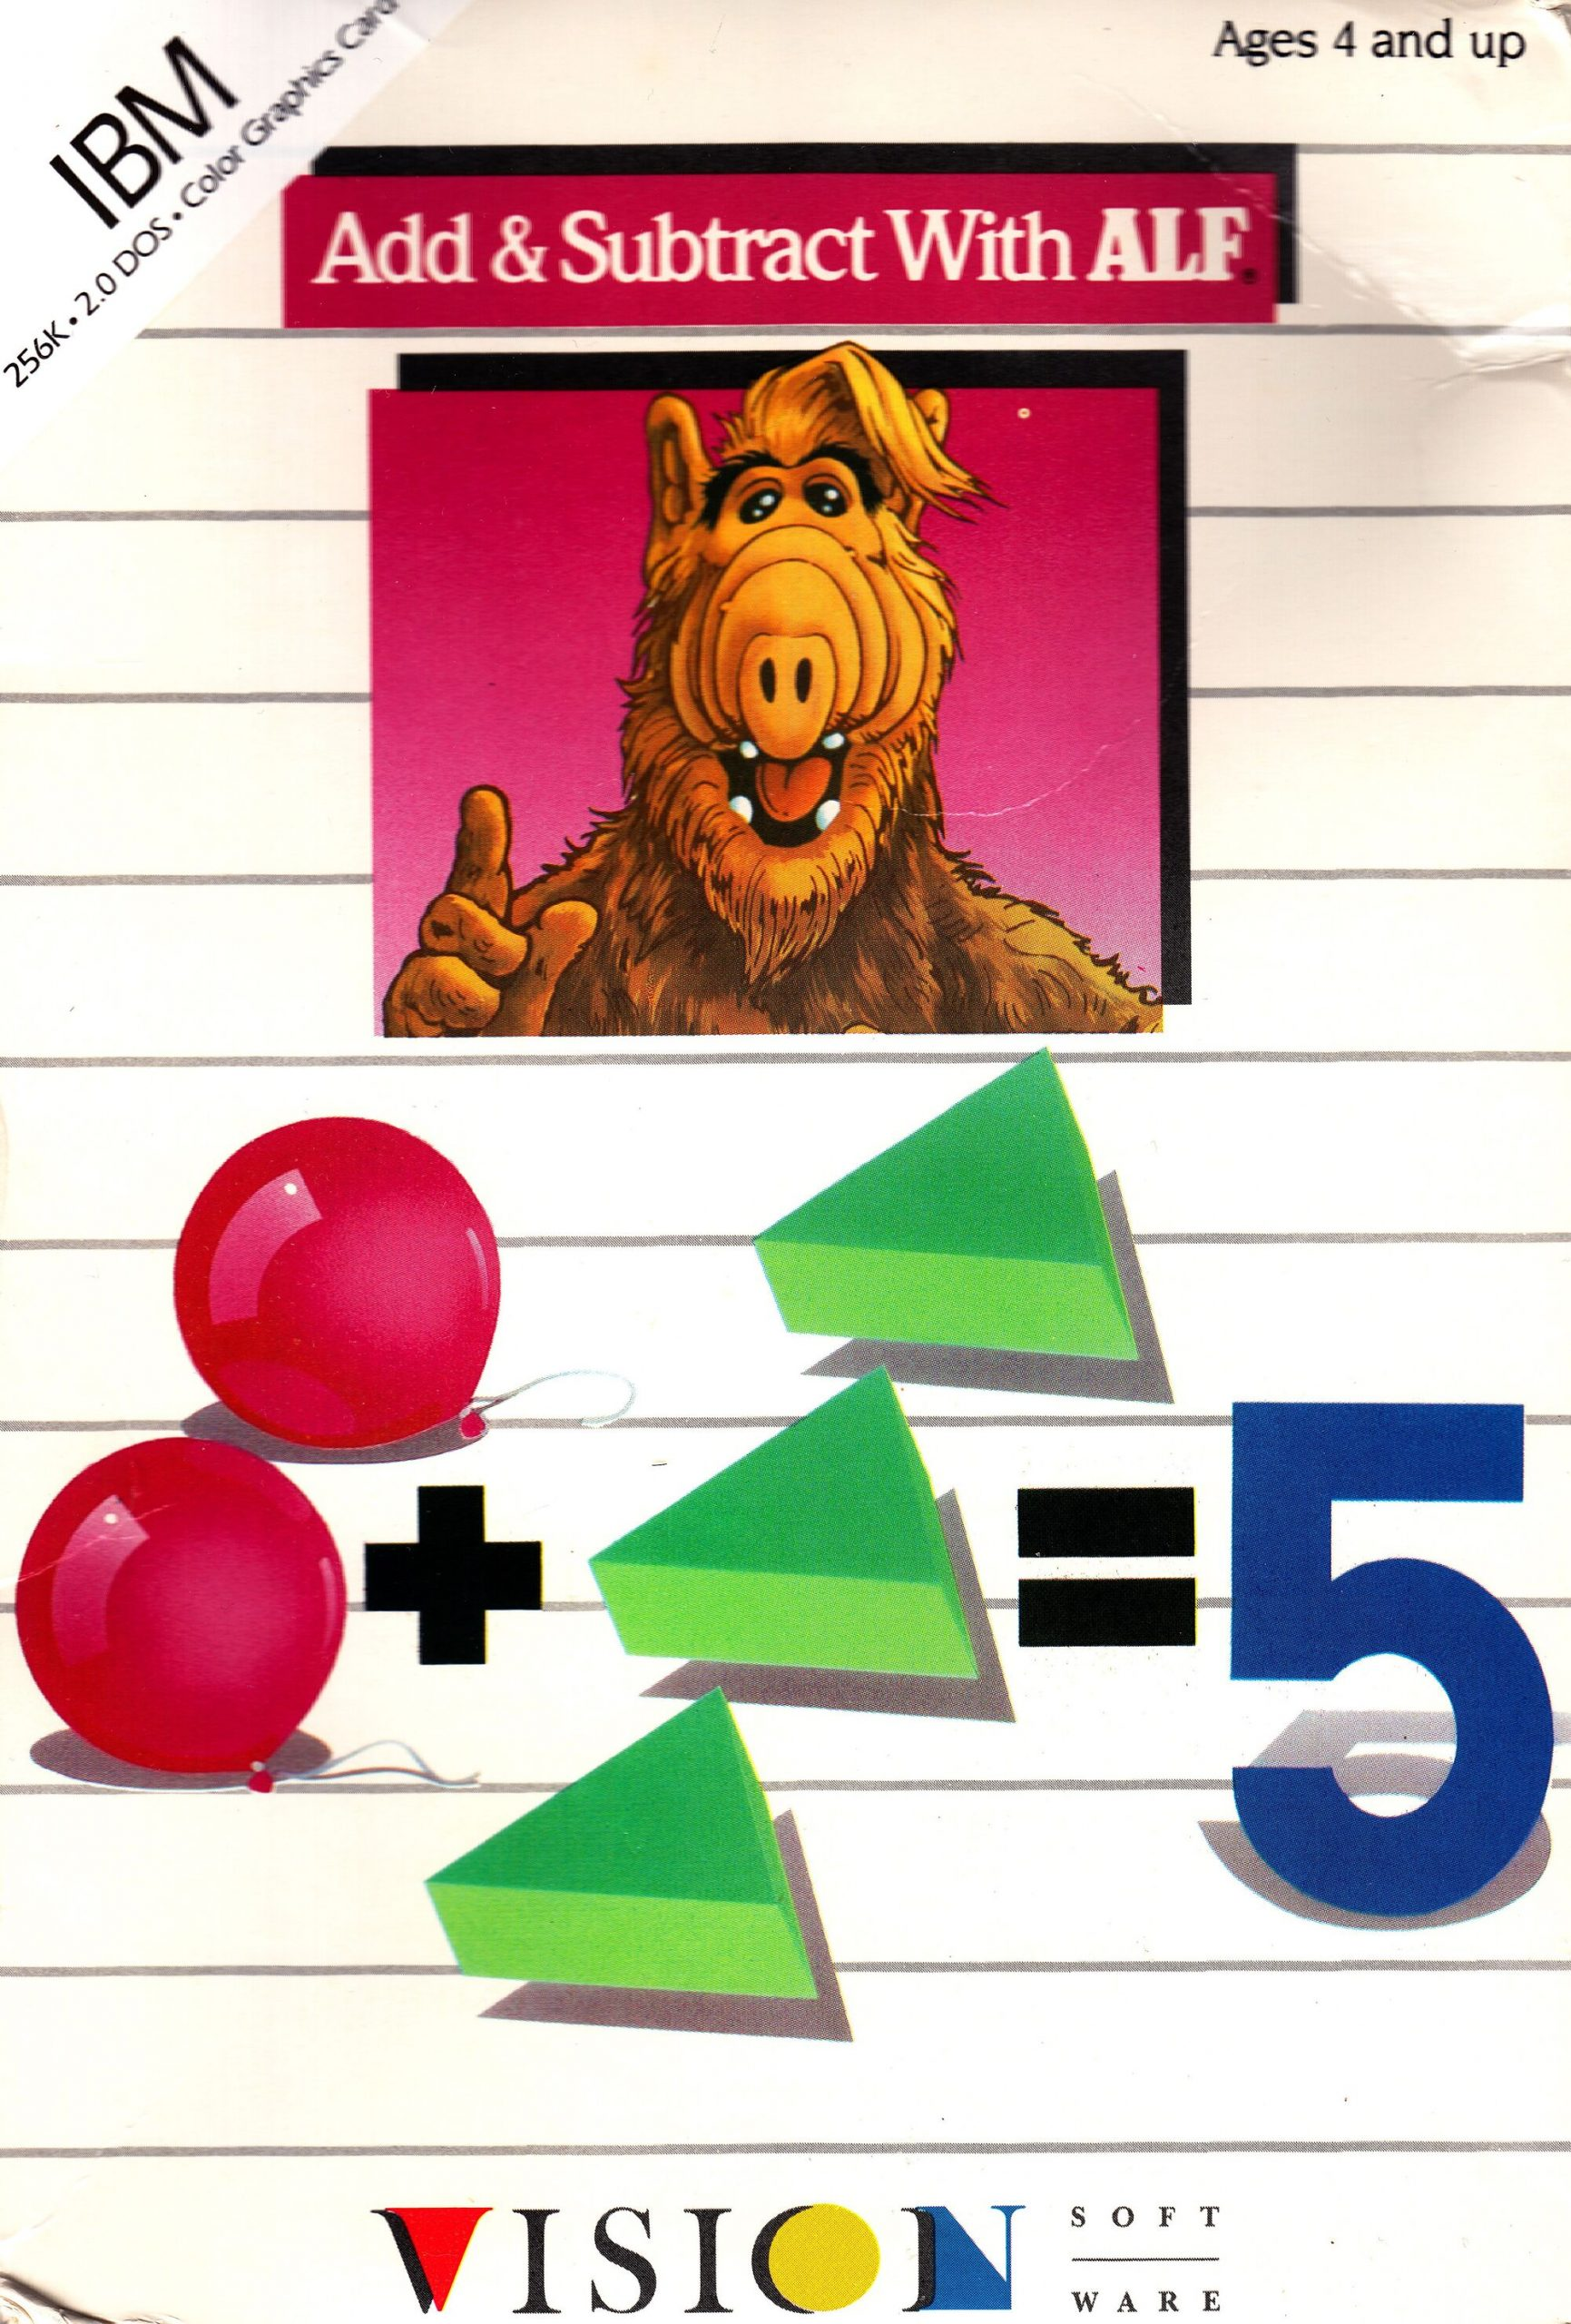 Add & Subtract With ALF statistics player count facts